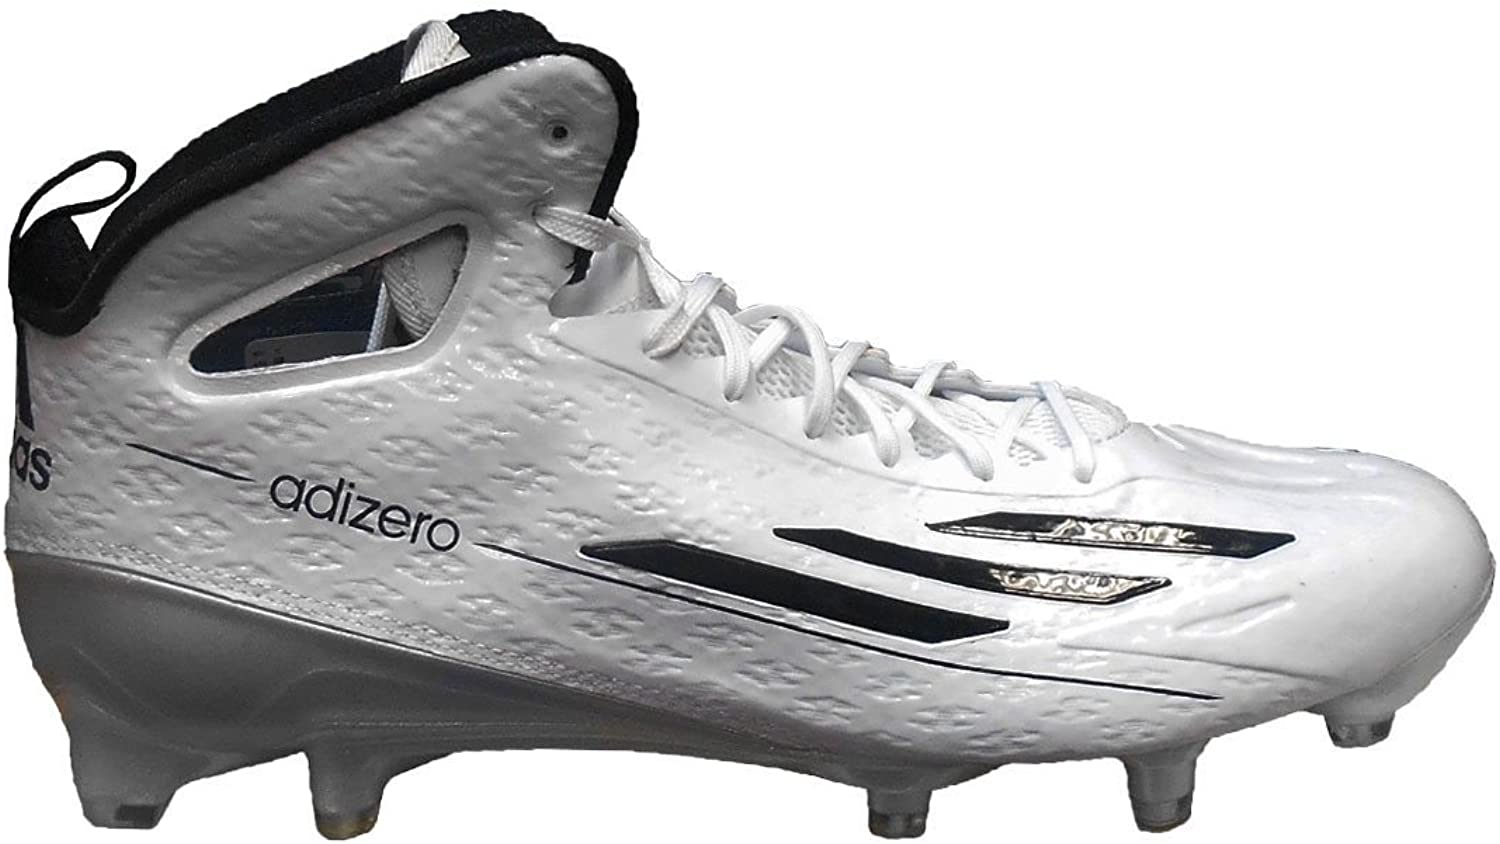 Adidas Men's Special SM Adizero 5-Star 4.0 Mid Football Cleats